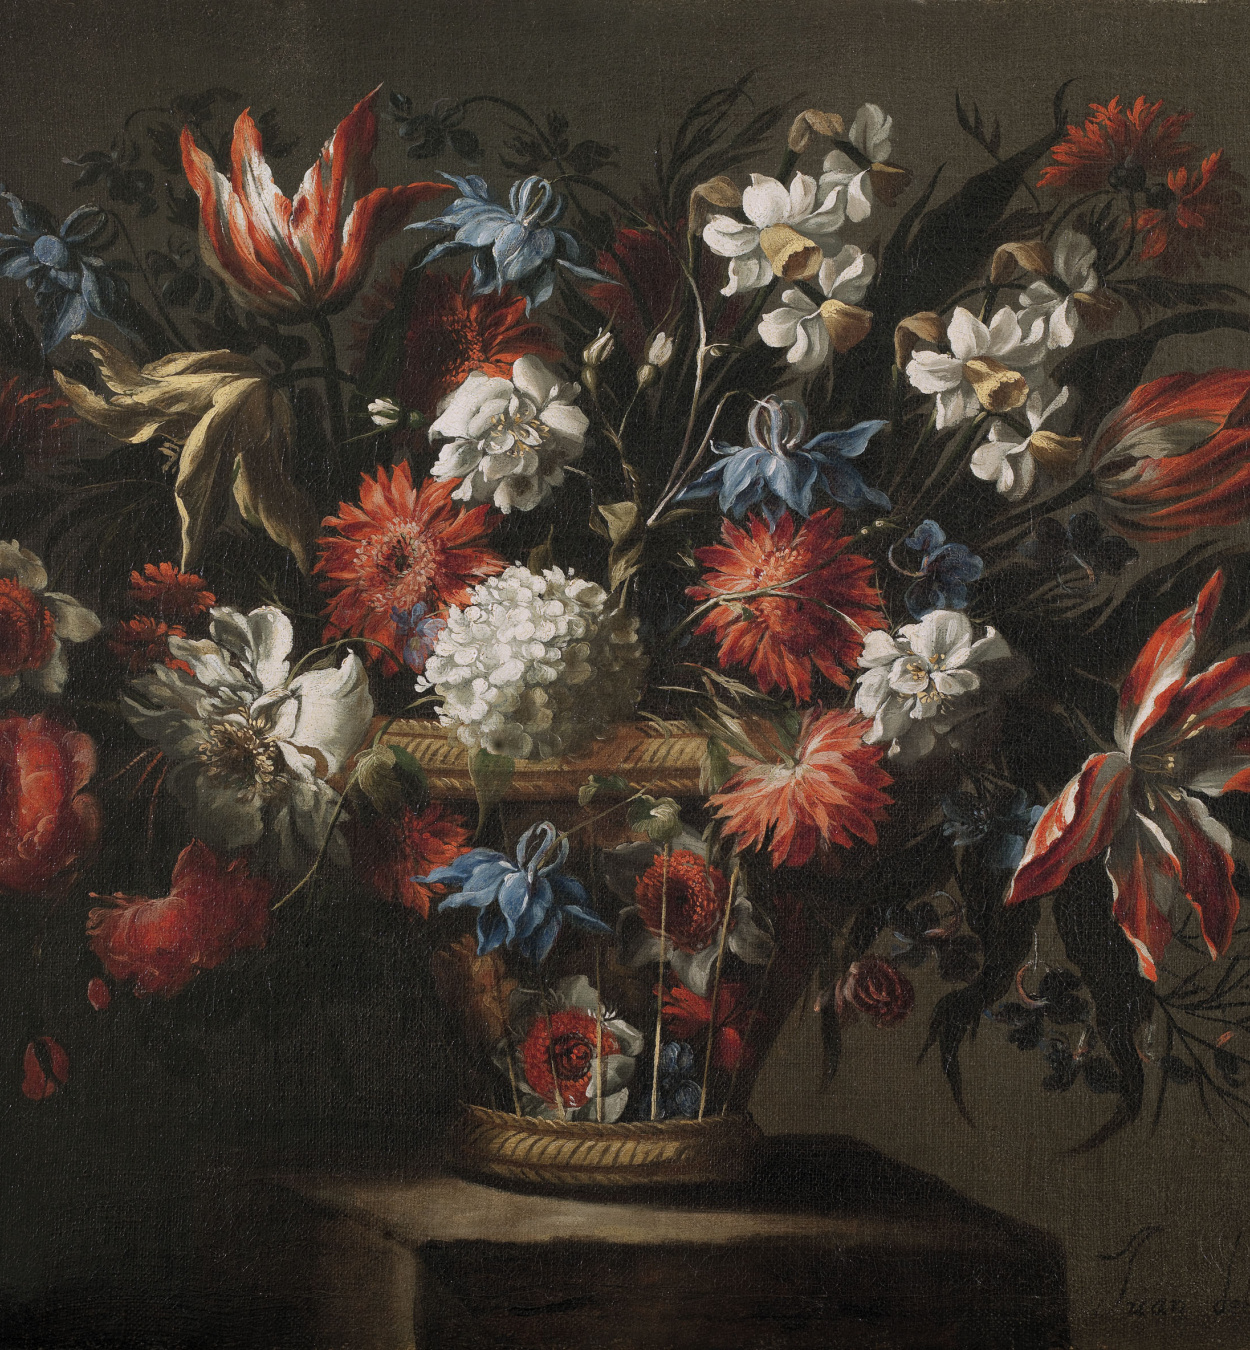 Juan de Arellano - Basket of flowers - Circa 1670